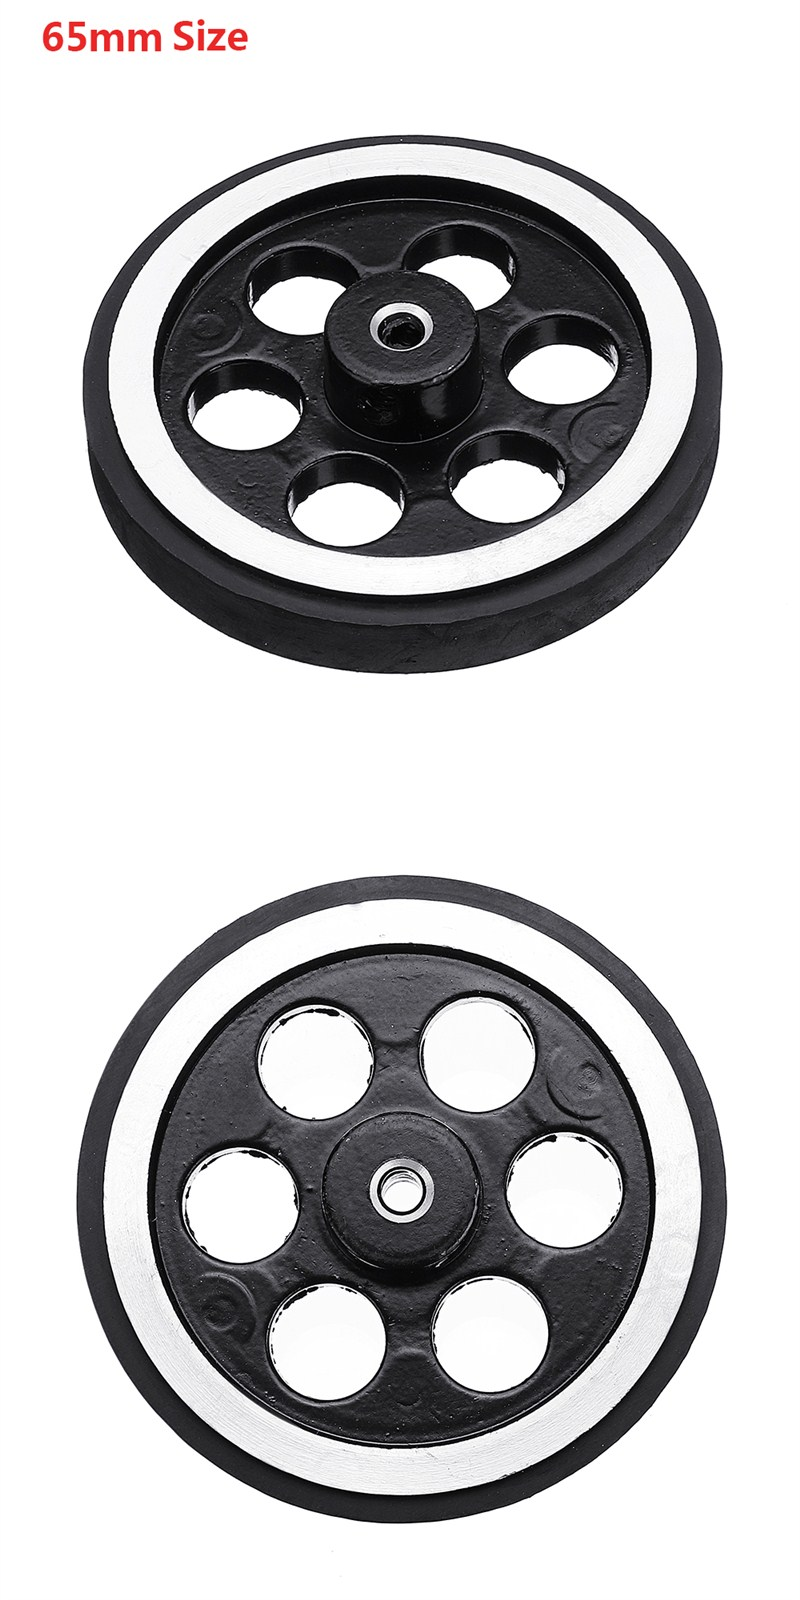 95mm/65mm Aluminum Alloy Frame Wheel + 12v DC Motor with Cable DIY Kit for Smart Chasssis Car Part